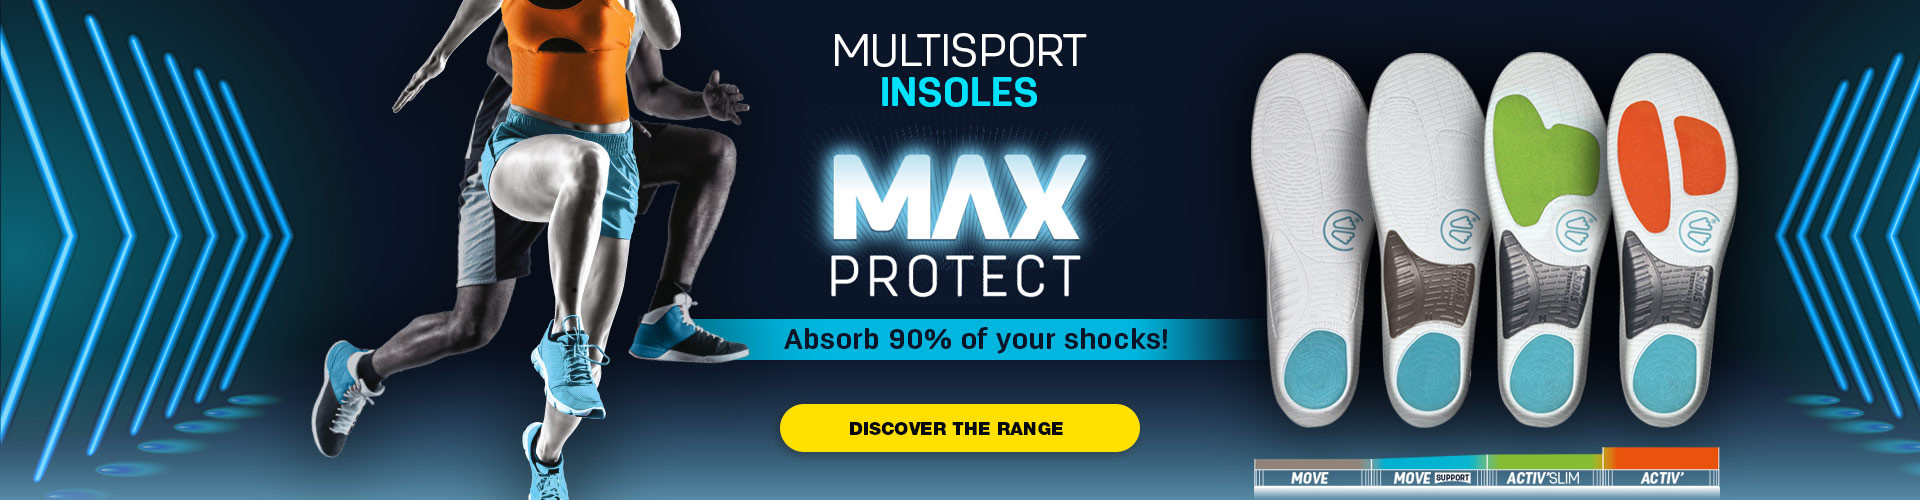 Discover our range of Max Protect insoles, perfect for multisport and absorb 90% of your shocks